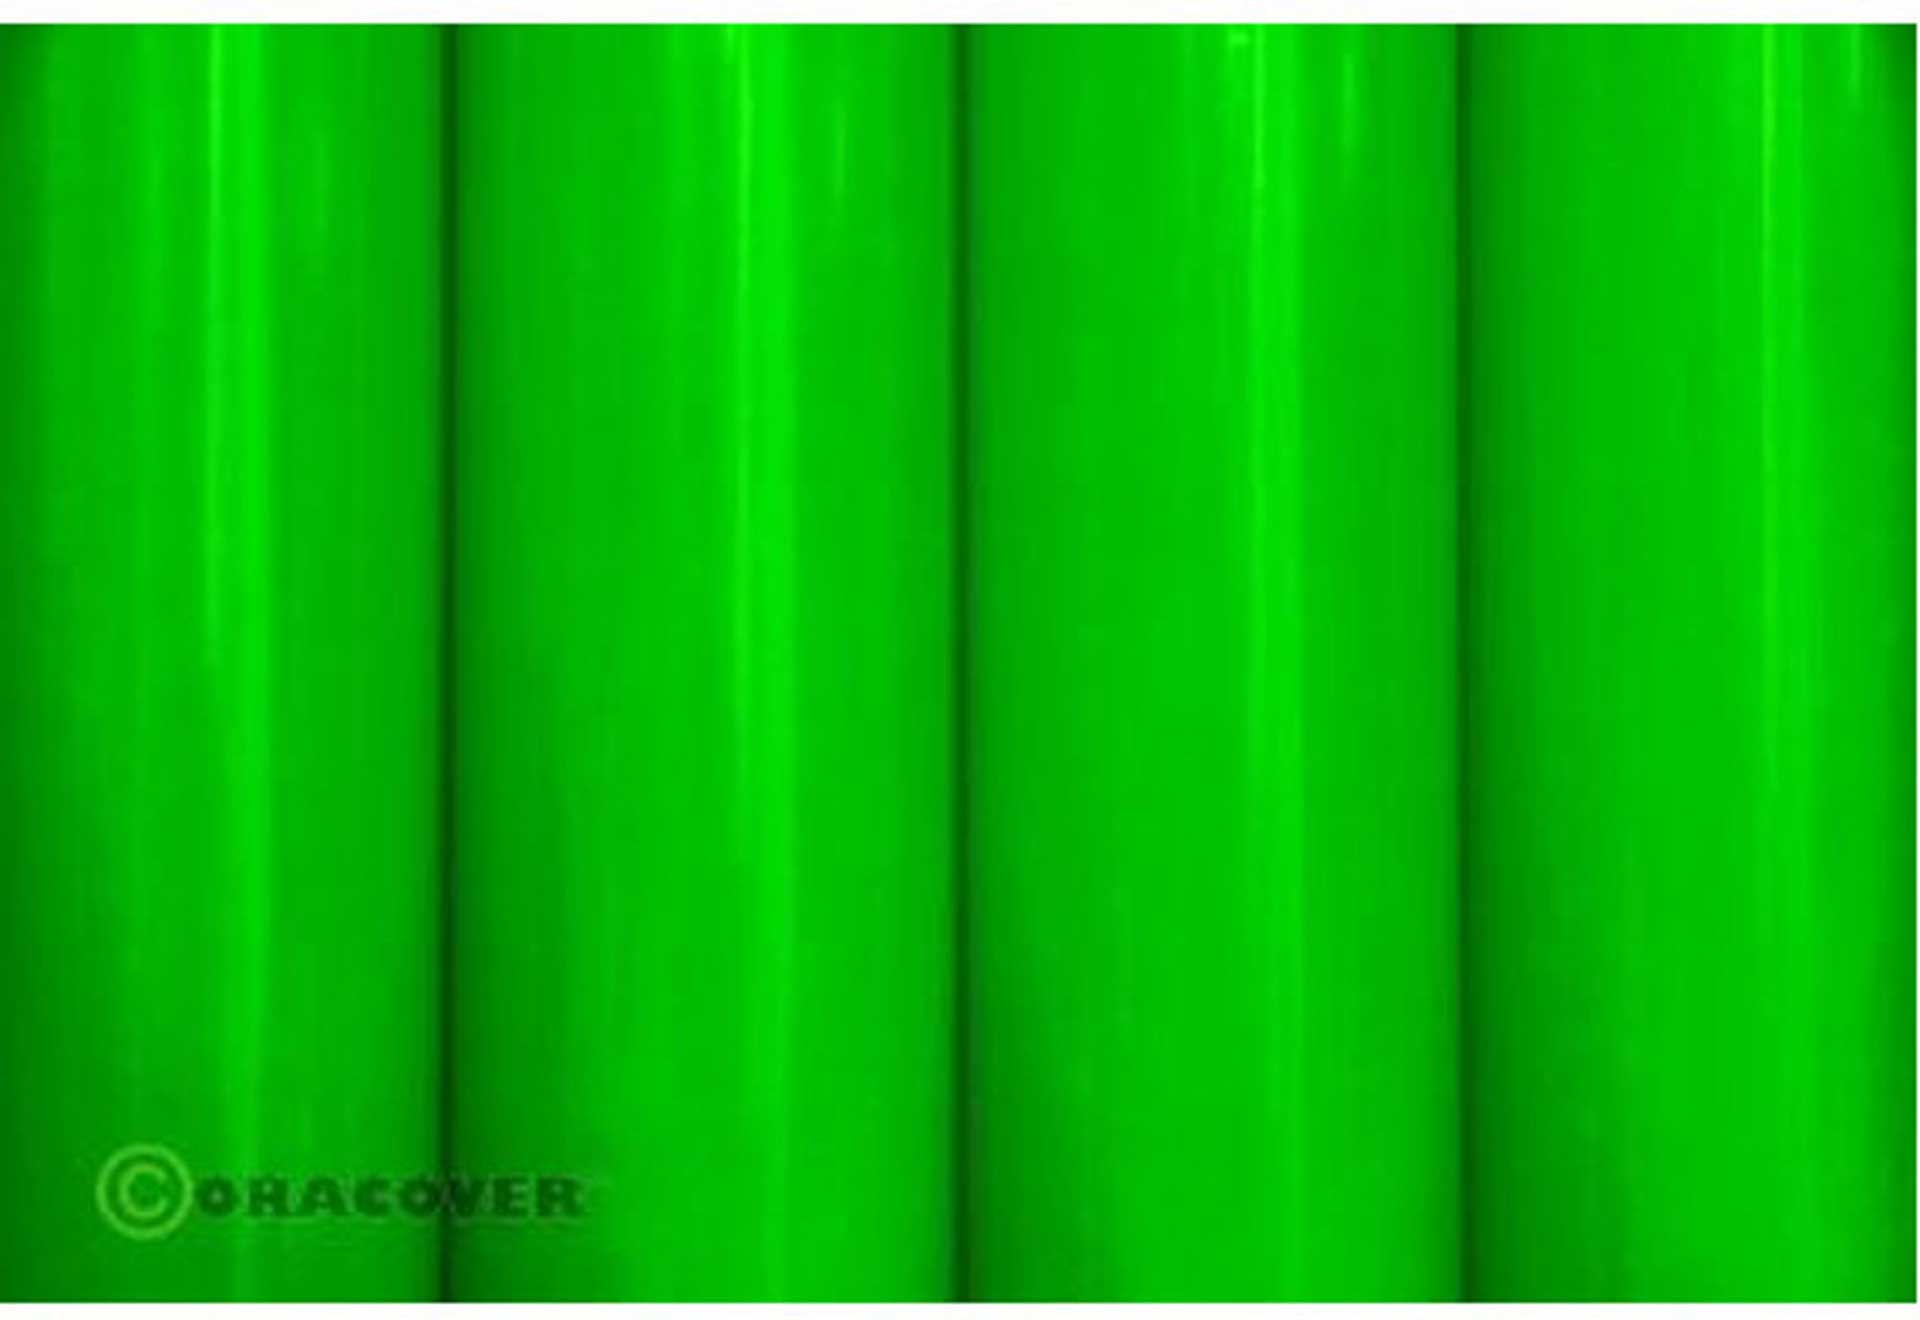 ORACOVER Adhesive Foil GREEN FLUORESCENT 1 Meter # 41 Orastick